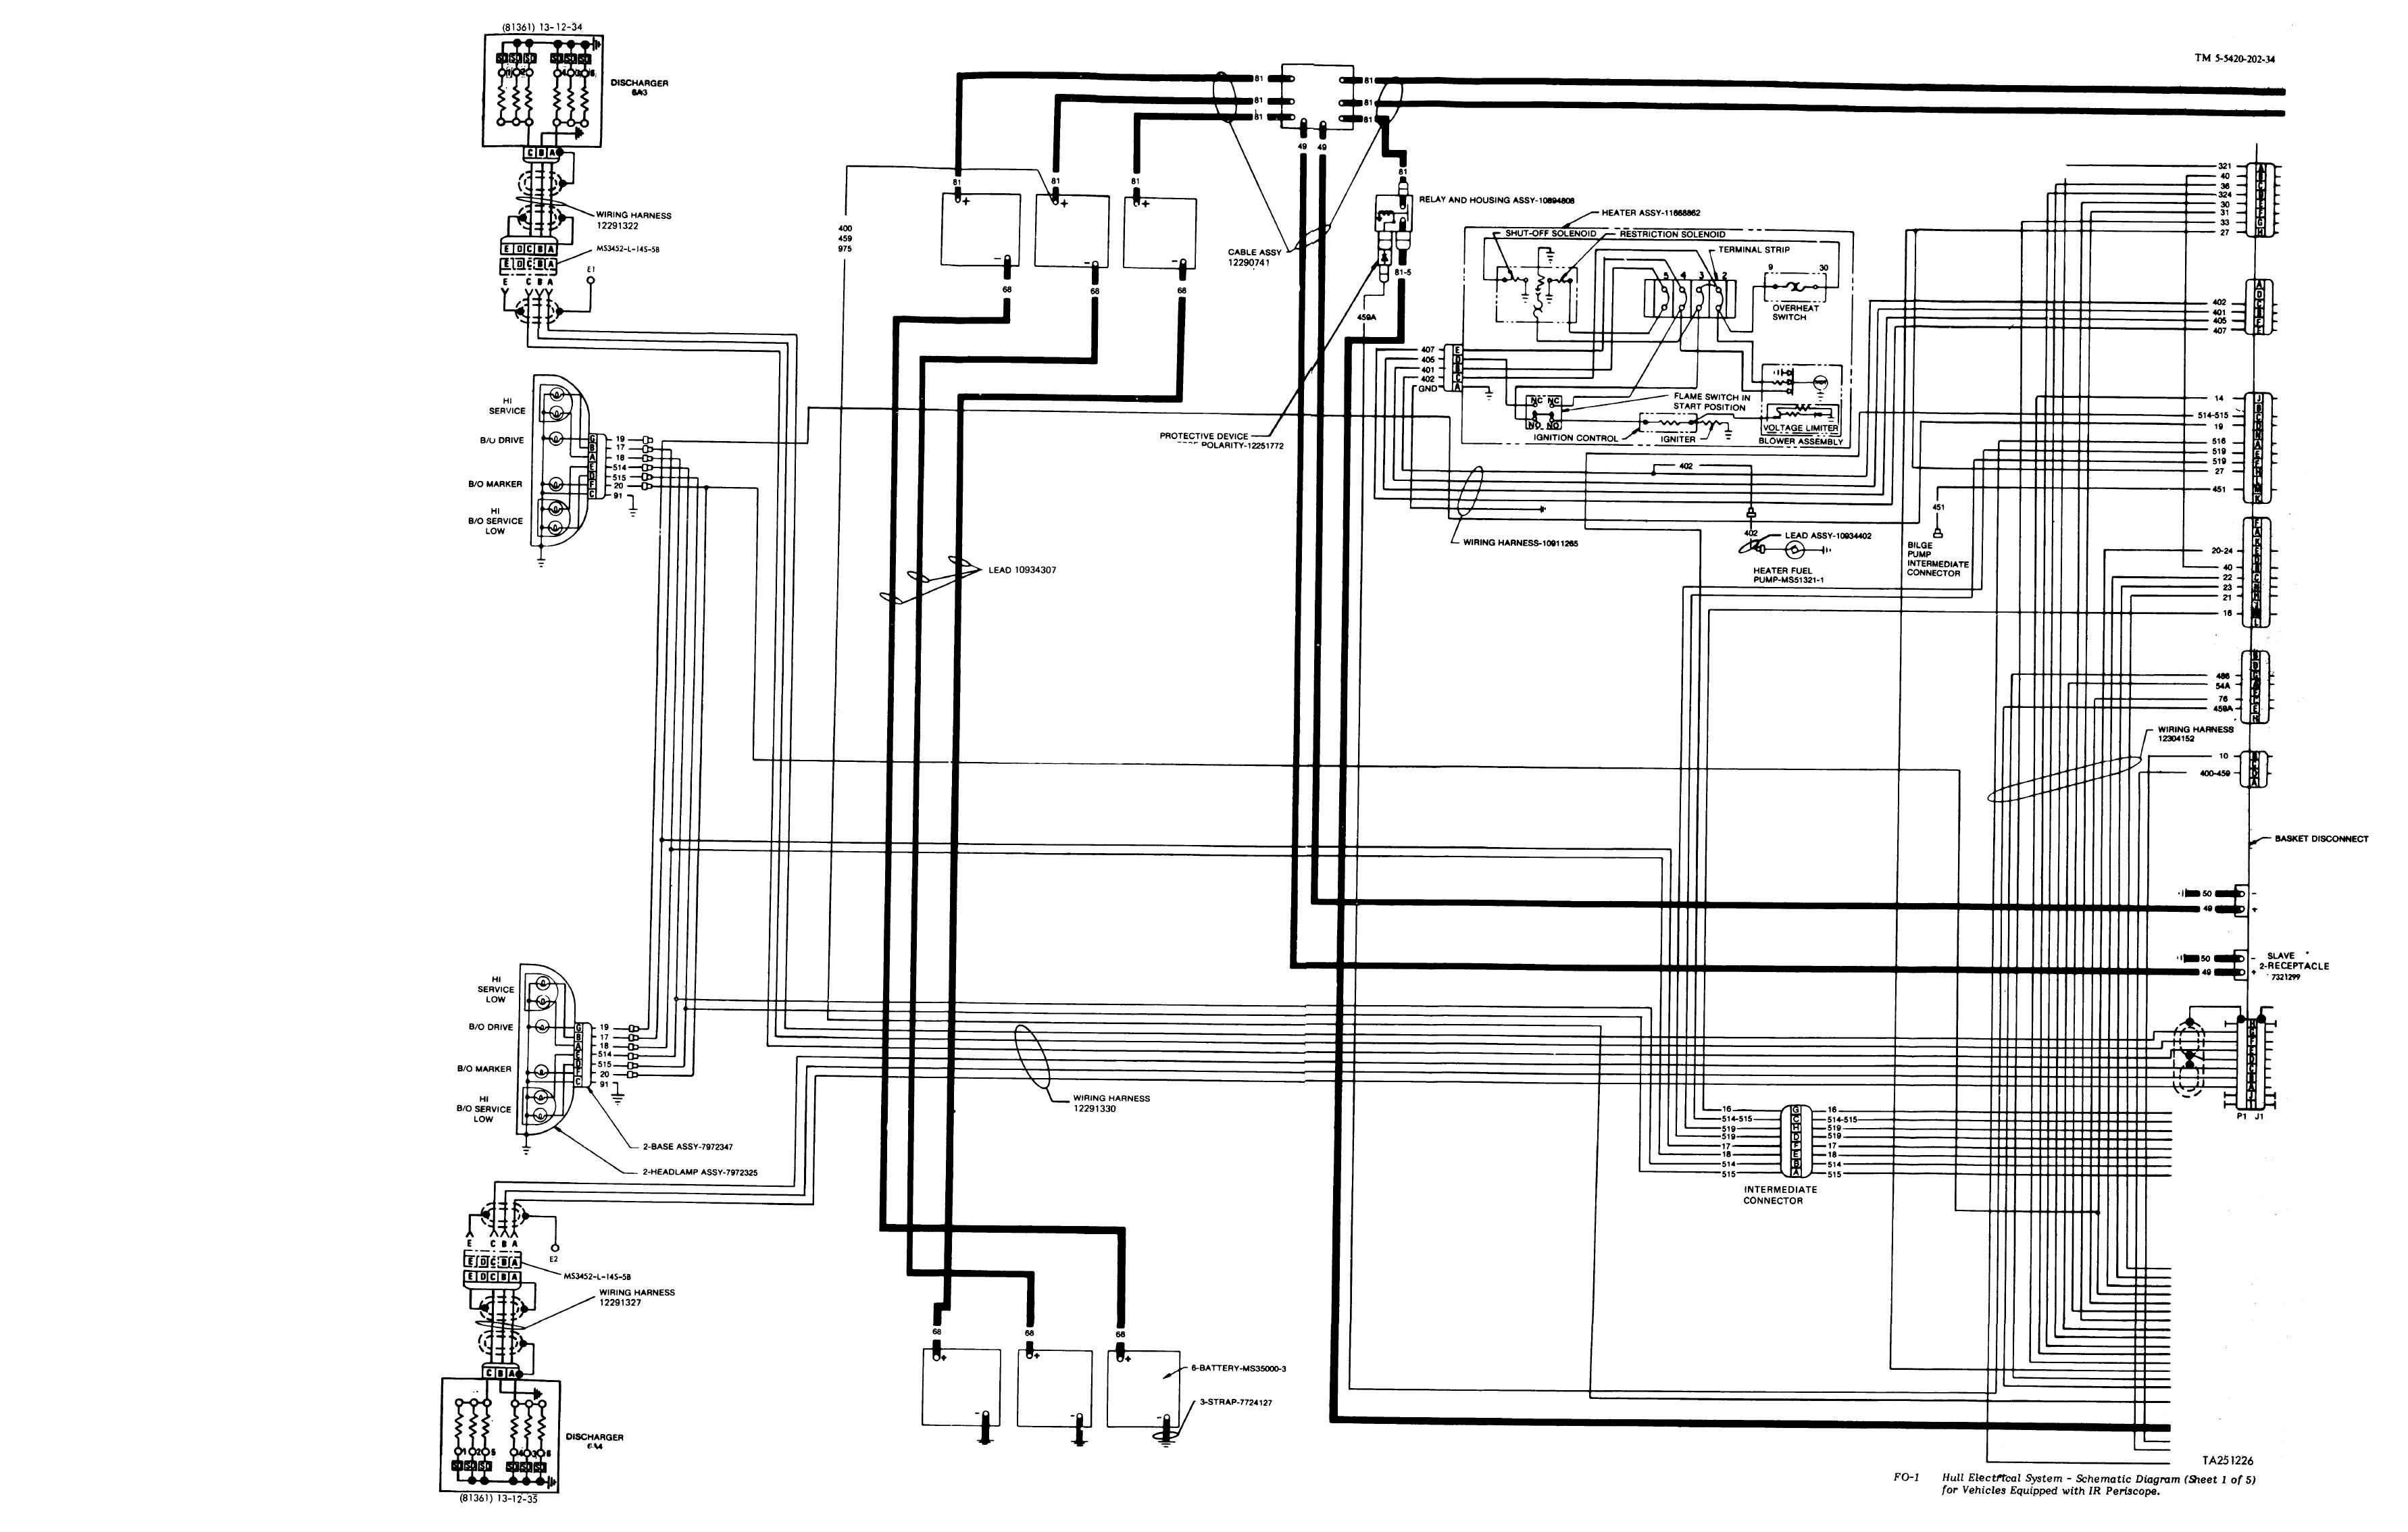 Fo 1 Hull Electrical System